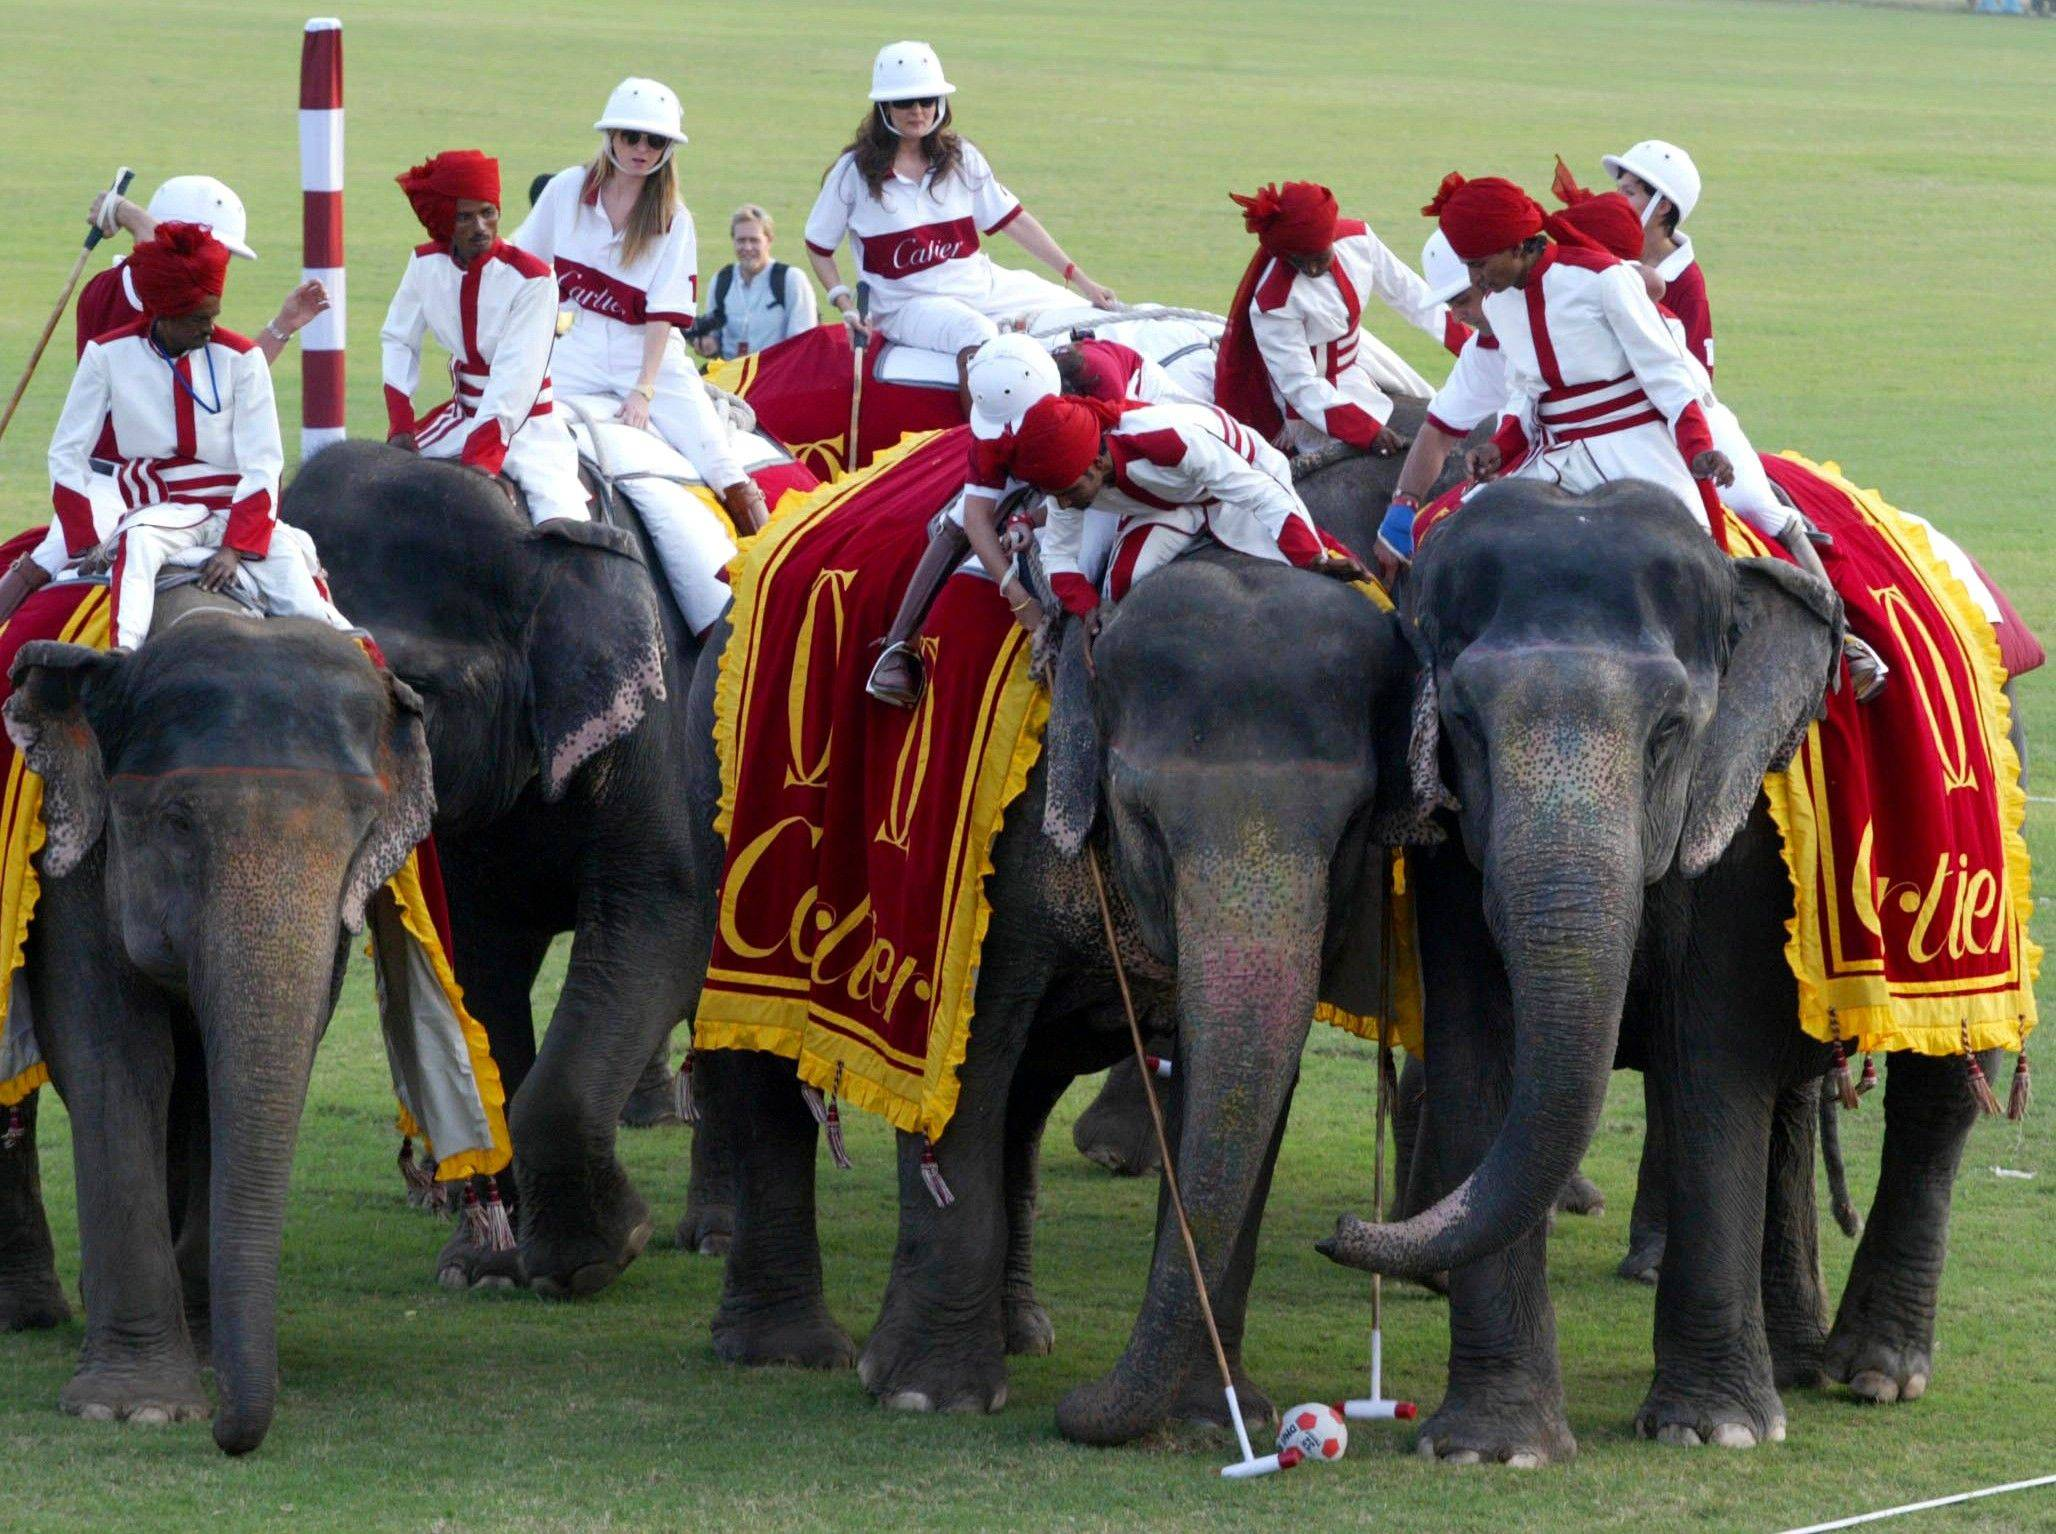 Celebrities participate in an elephant polo match in Jaipur in the Indian state of Rajasthan. An elephant polo match scheduled for Sunday, Aug. 21, 2011 in Jaipur has been canceled after animal rights activists objected that the sport was cruel to the animals.